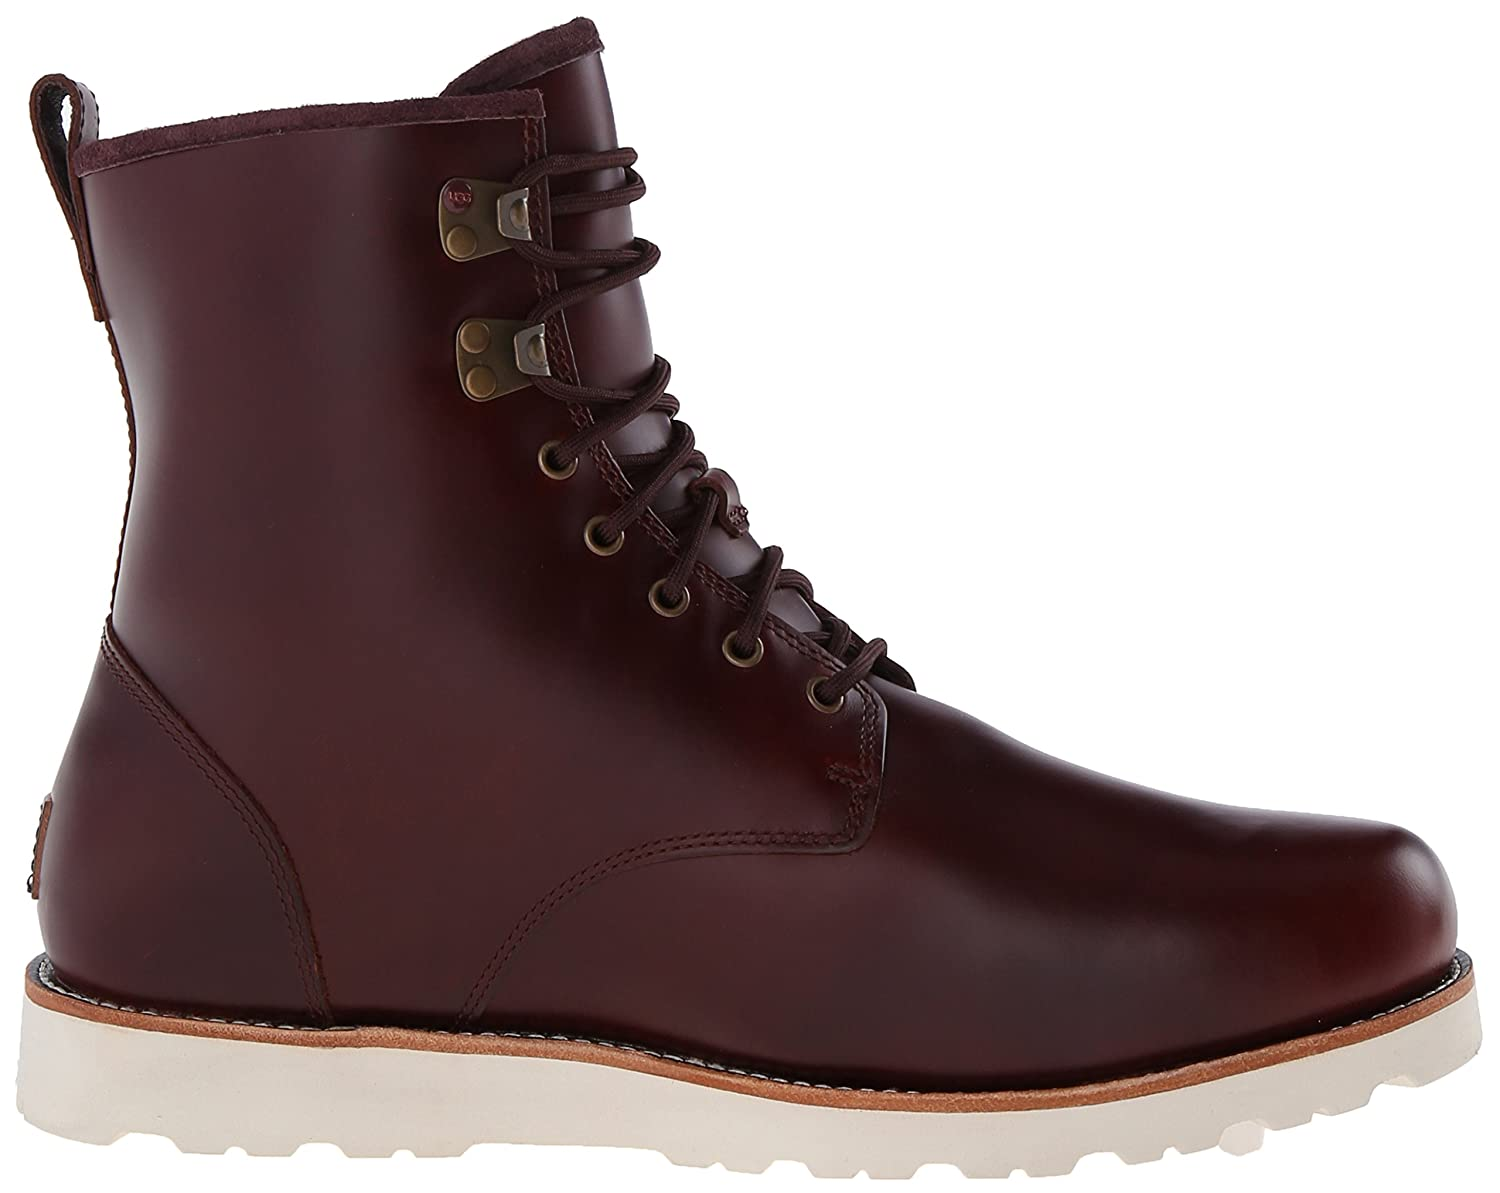 Men's Vintage Workwear – 1920s, 1930s, 1940s, 1950s UGG Mens Hannen Tl Winter Boot $229.99 AT vintagedancer.com